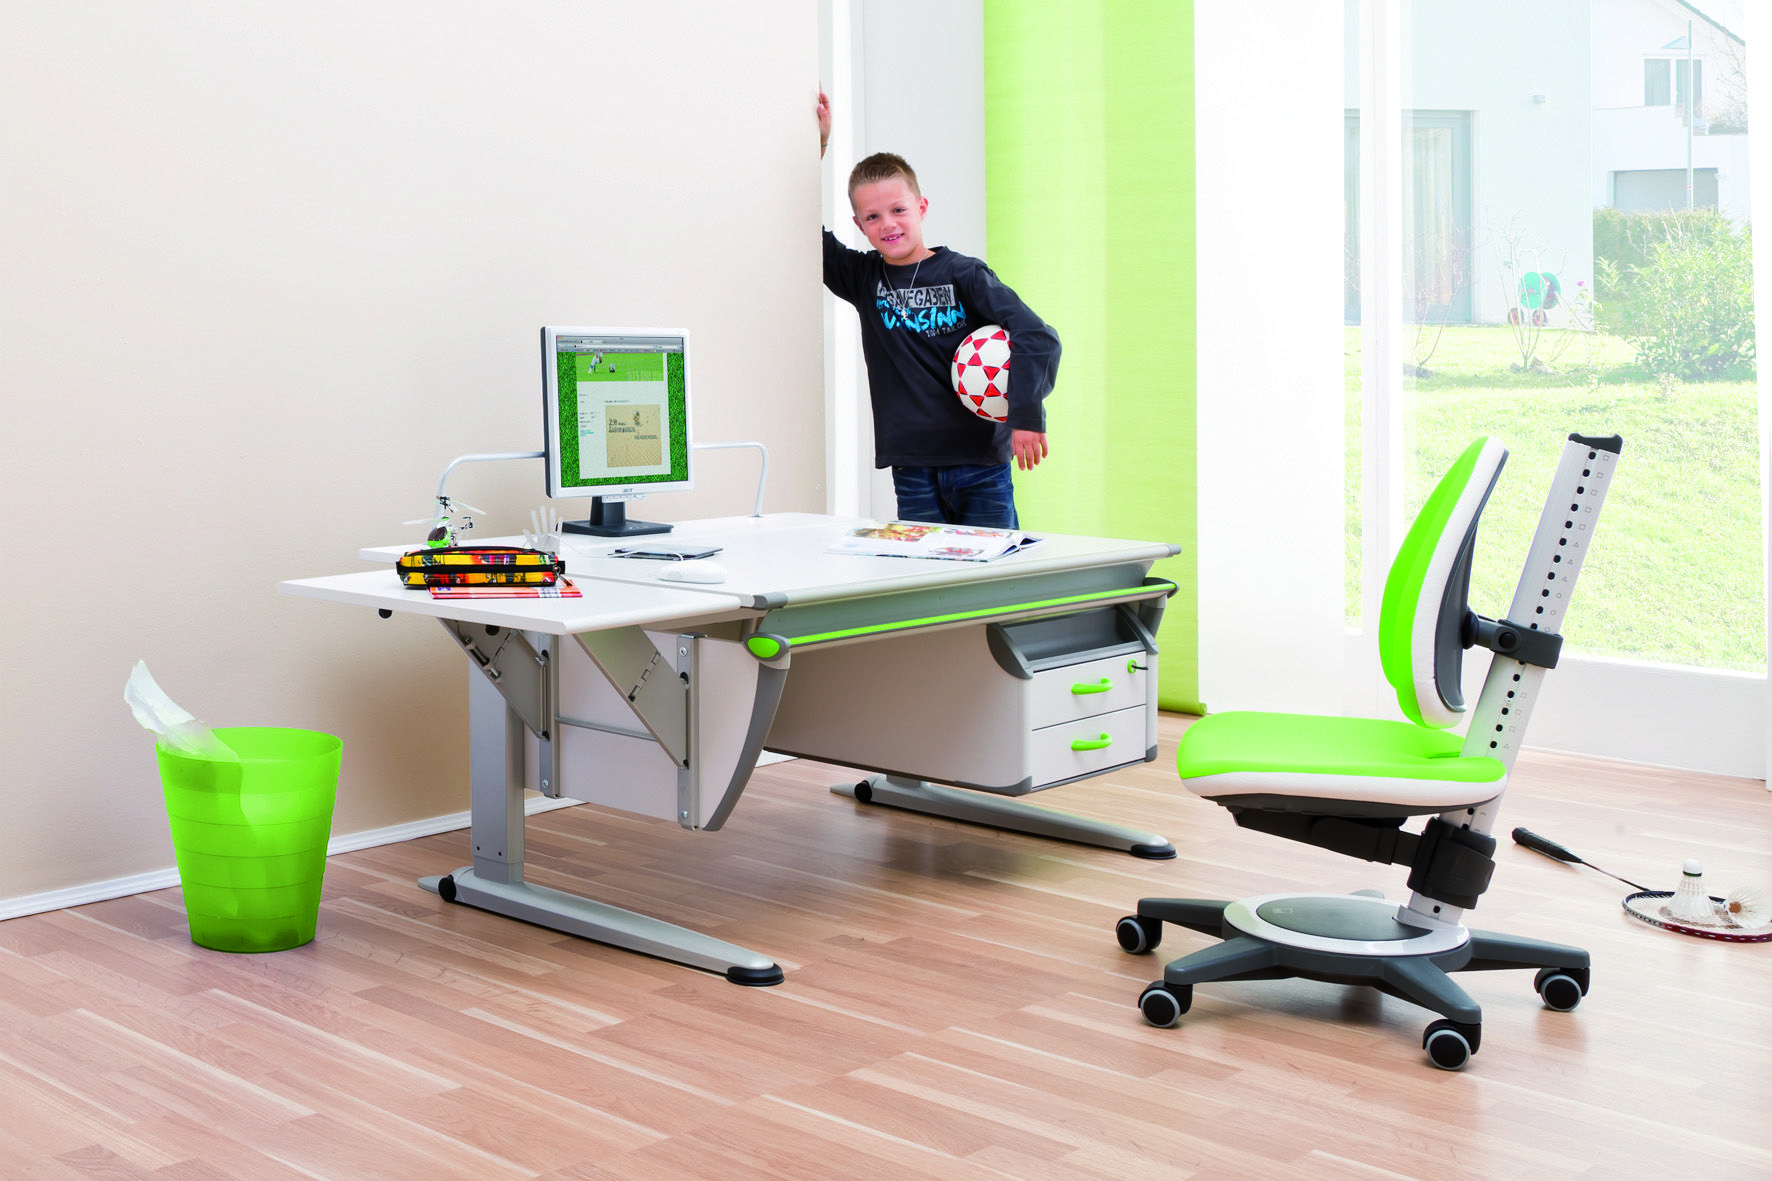 moll Booster ergonomic study table with a Quicktop extension and the Maximo chair